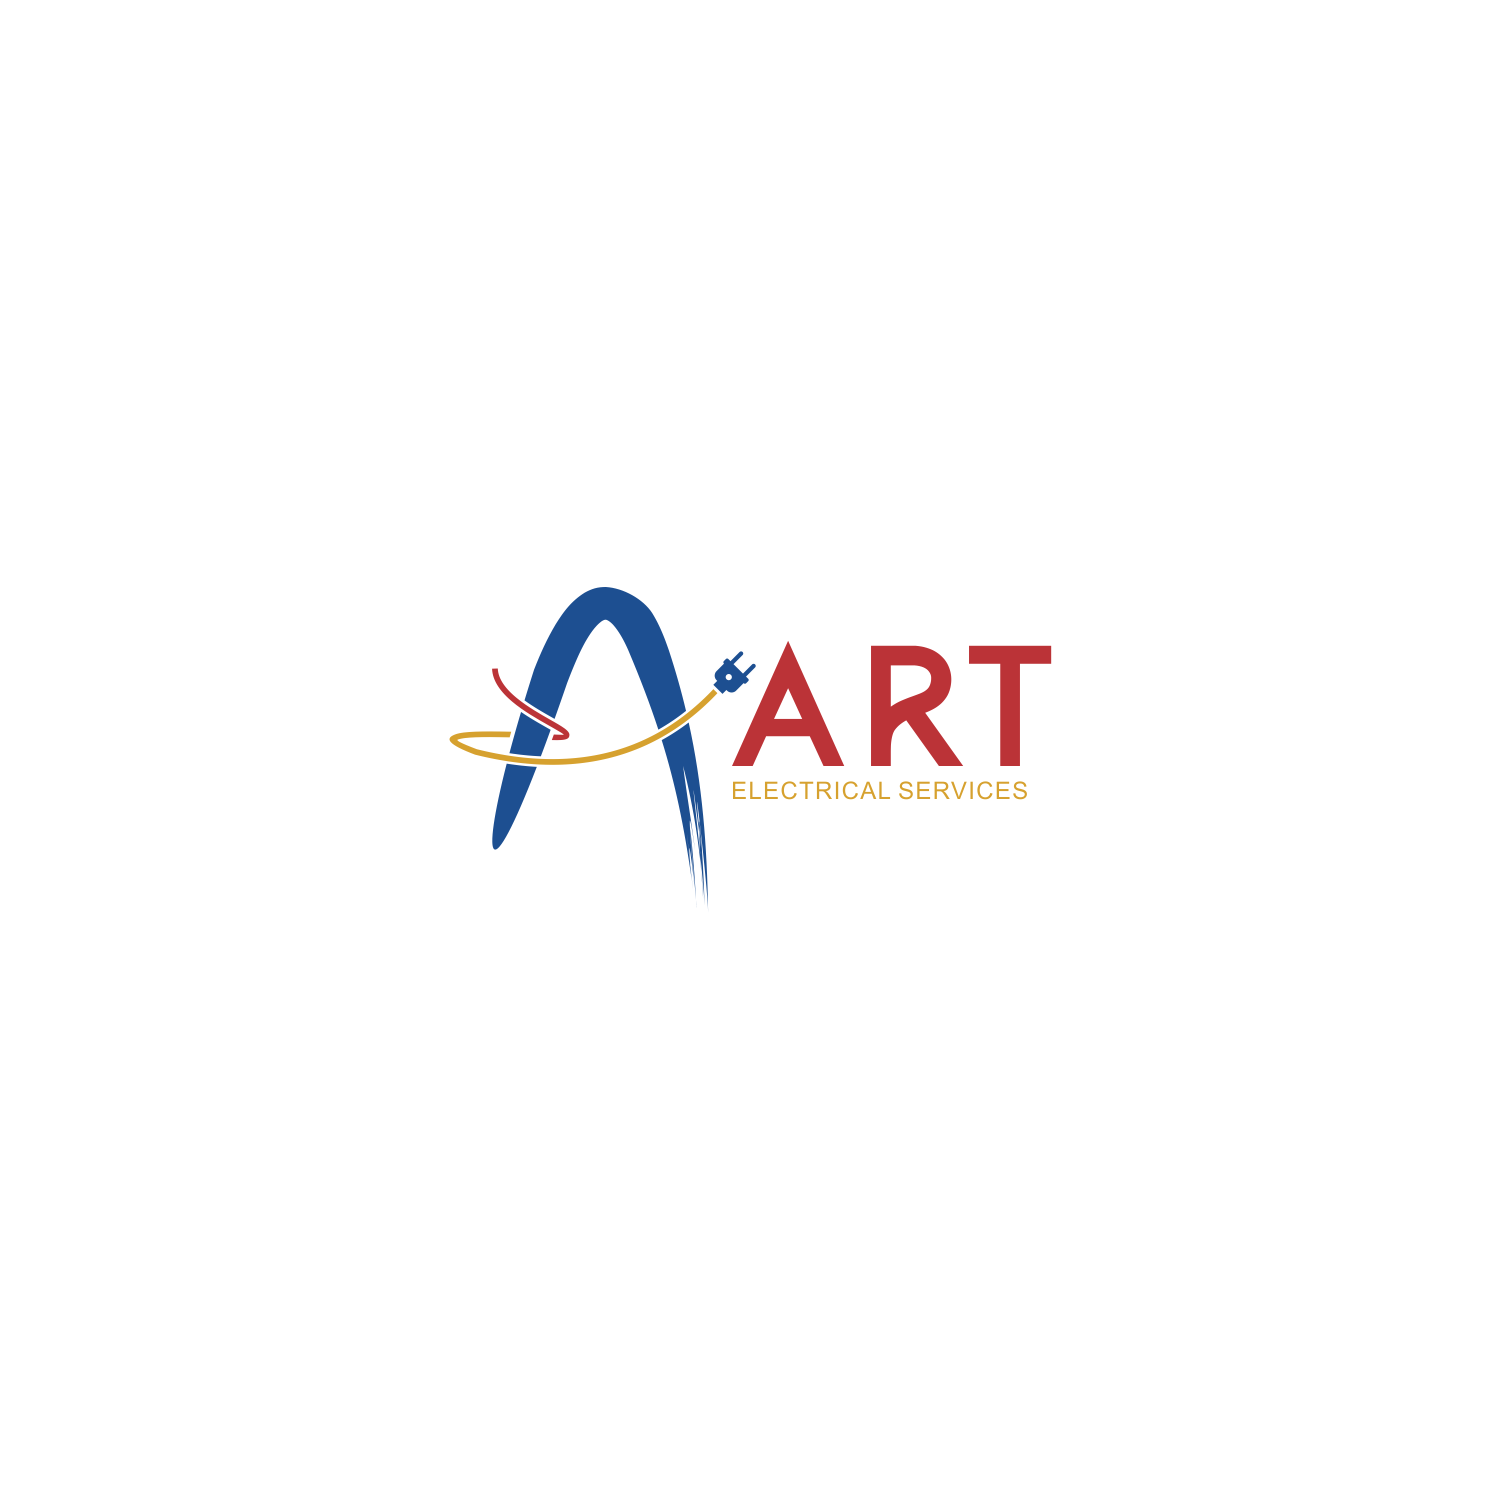 Elegant Serious Logo Design For Art Electrical Services